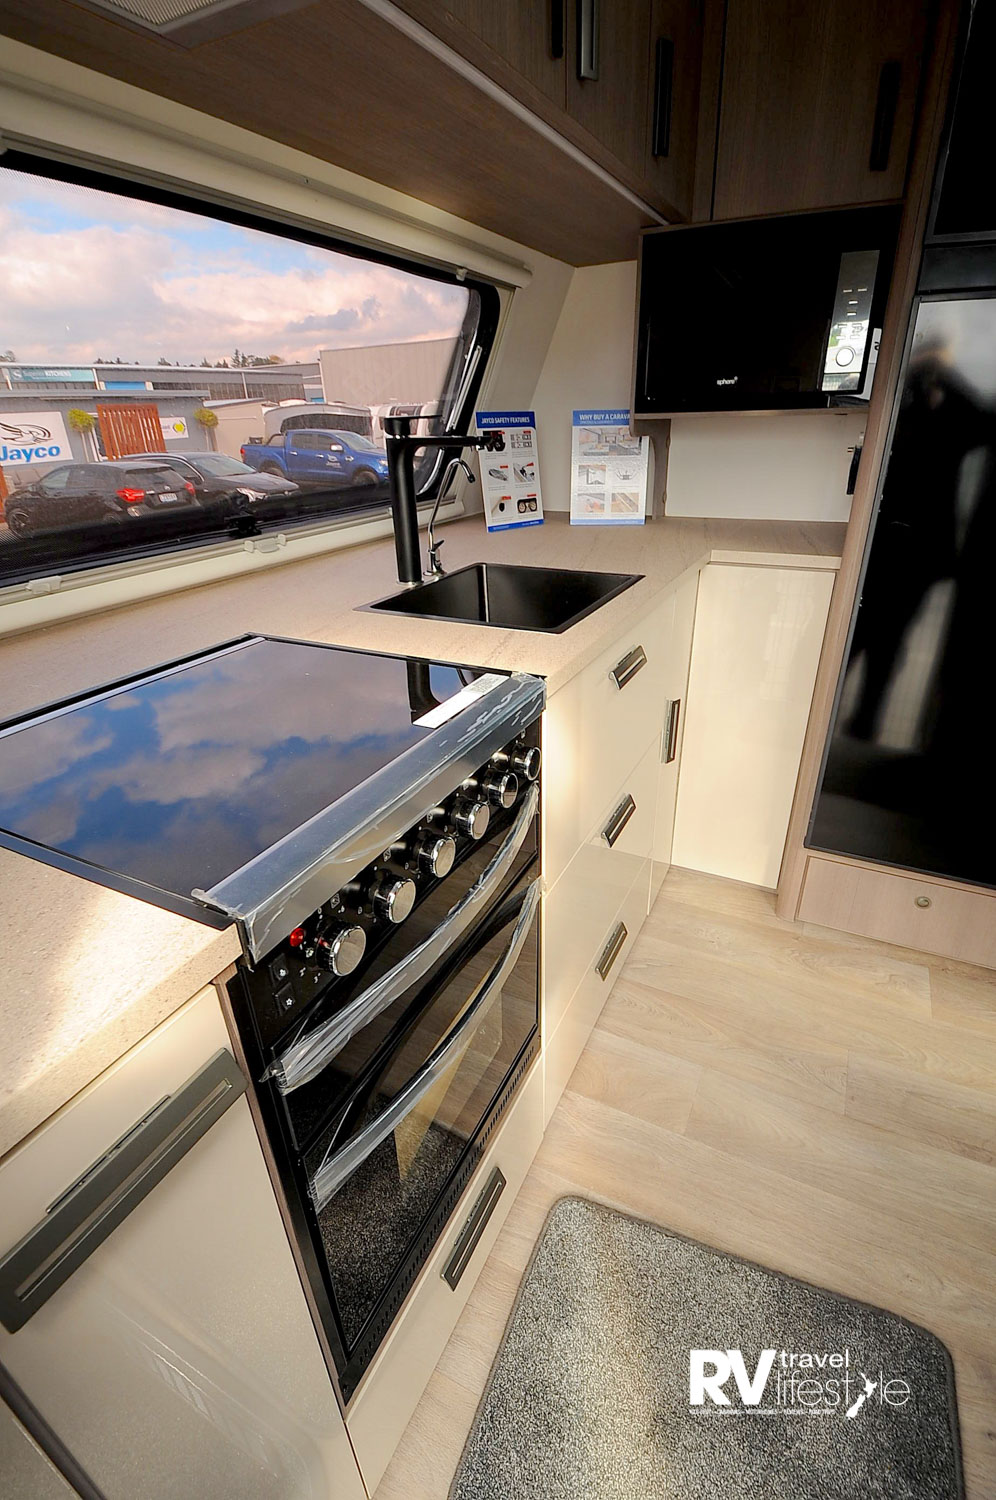 The full-width kitchen offers full-sized oven with separate grill, four gas hobs, large inset sink, drawers and pull-out pantry storage, substantial storage in the overhead lockers, and a large microwave